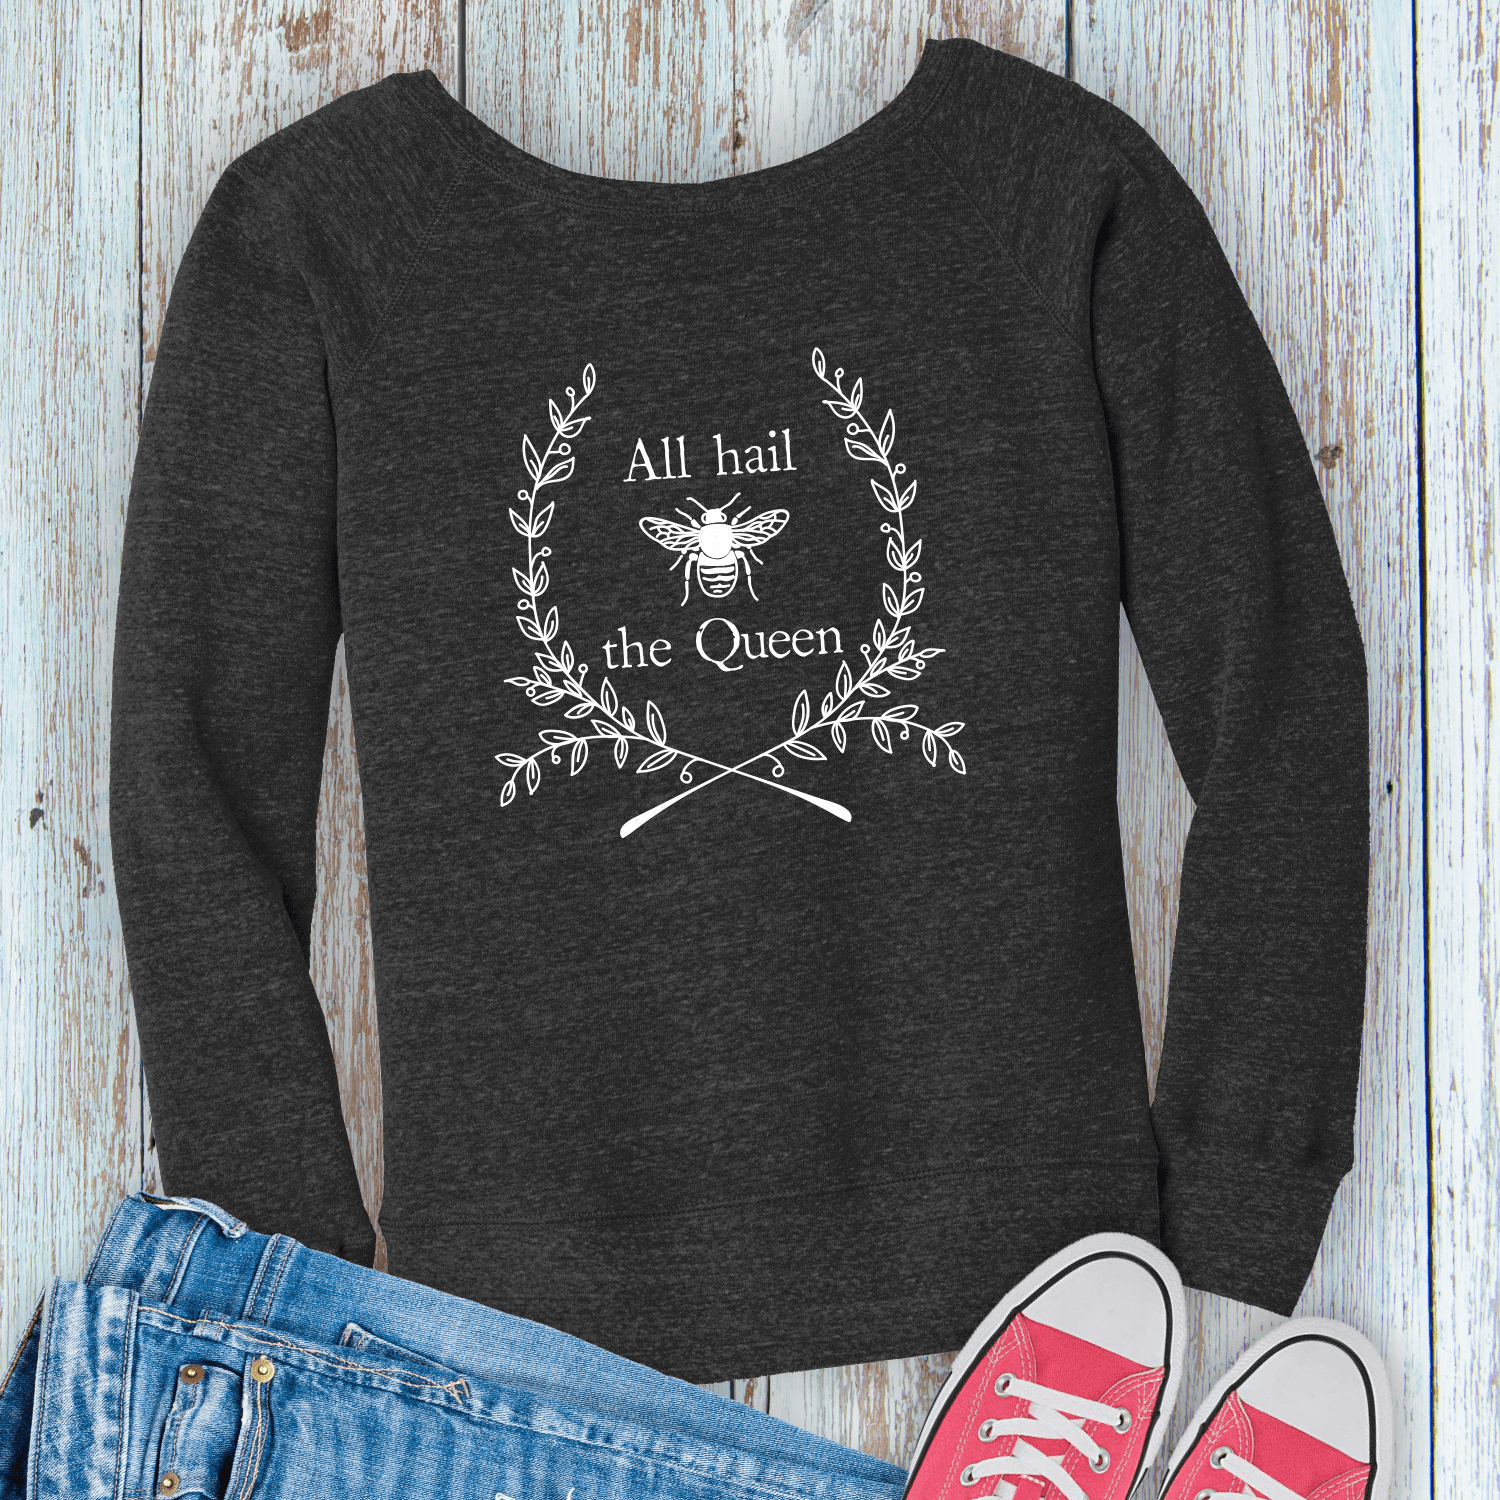 All-Hail-Queen-Bella-Ladies-Sweatshirt